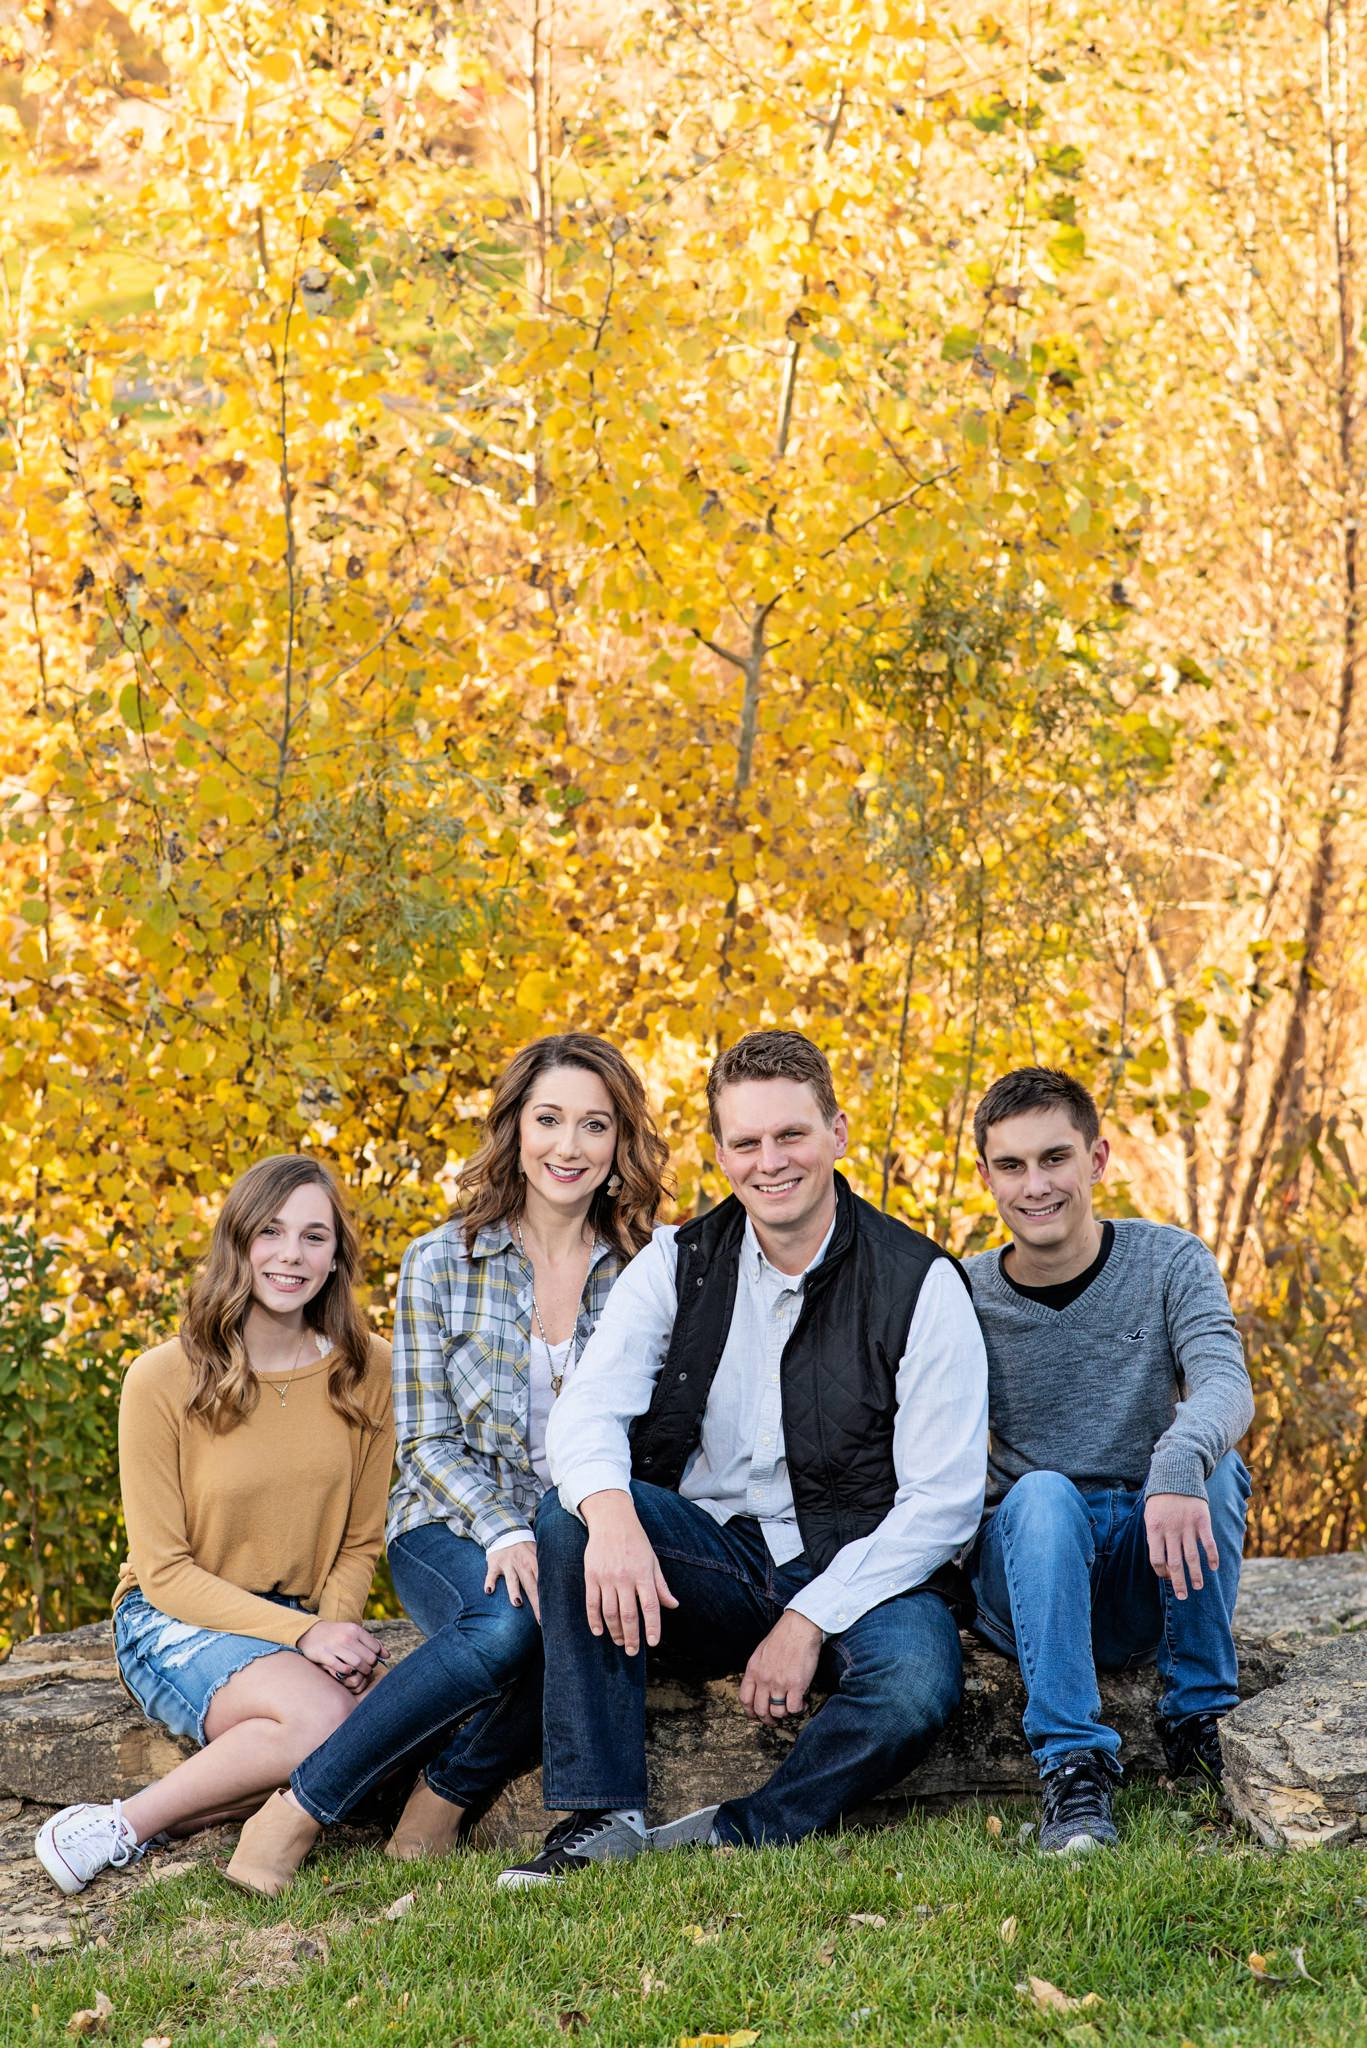 Wittwer-Family-Rotella-Photography-2018-25_WEB.jpg